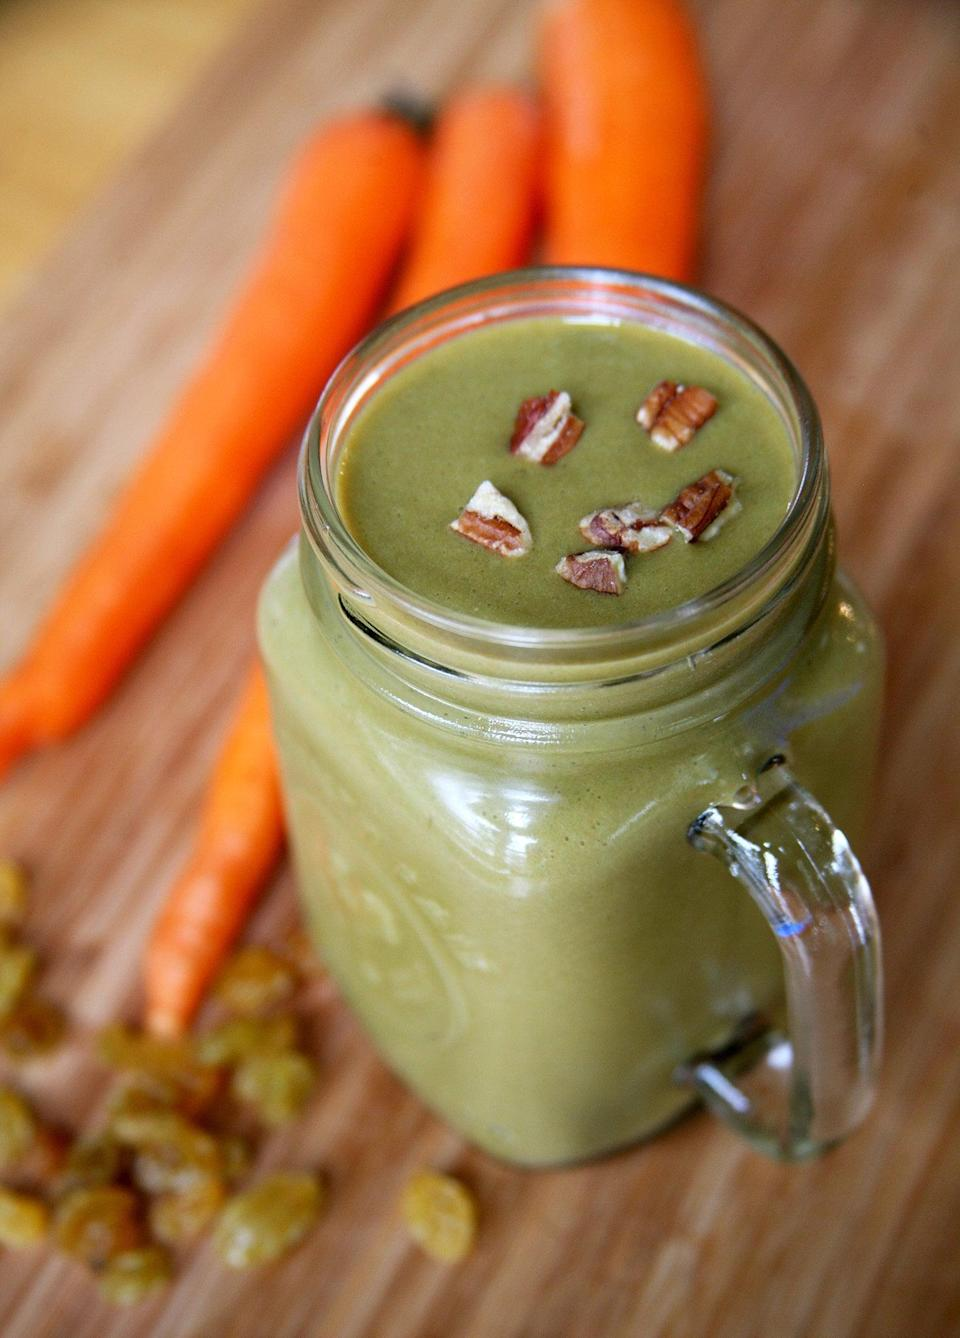 """<p>This <a href=""""https://www.popsugar.com/fitness/Vegan-Carrot-Cake-Smoothie-34586392"""" class=""""link rapid-noclick-resp"""" rel=""""nofollow noopener"""" target=""""_blank"""" data-ylk=""""slk:carrot cake smoothie"""">carrot cake smoothie</a> offers 19 grams of filling protein and over nine grams of fiber. </p>"""